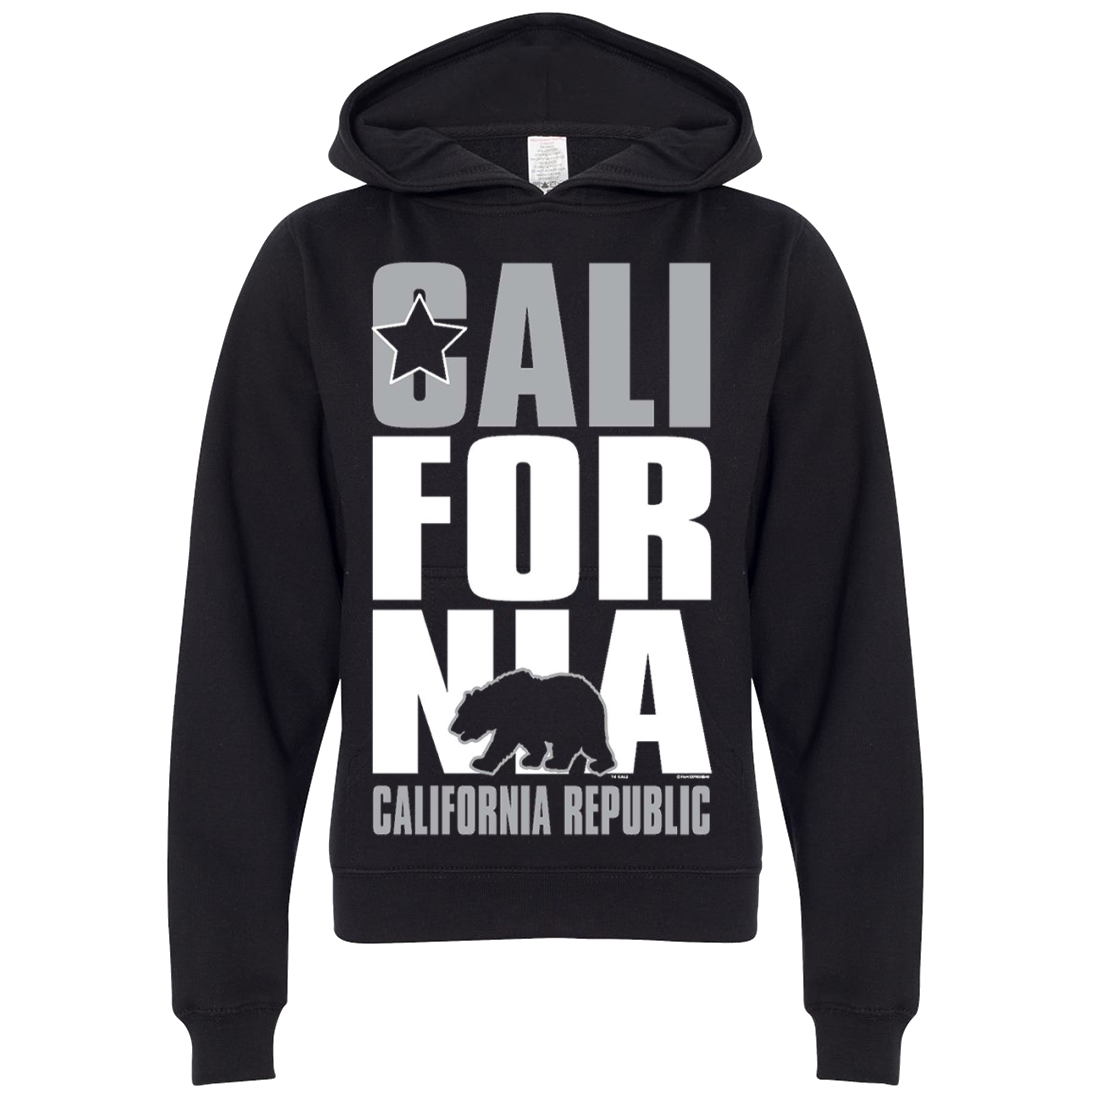 California Republic Silver Premium Youth Sweatshirt Hoodie